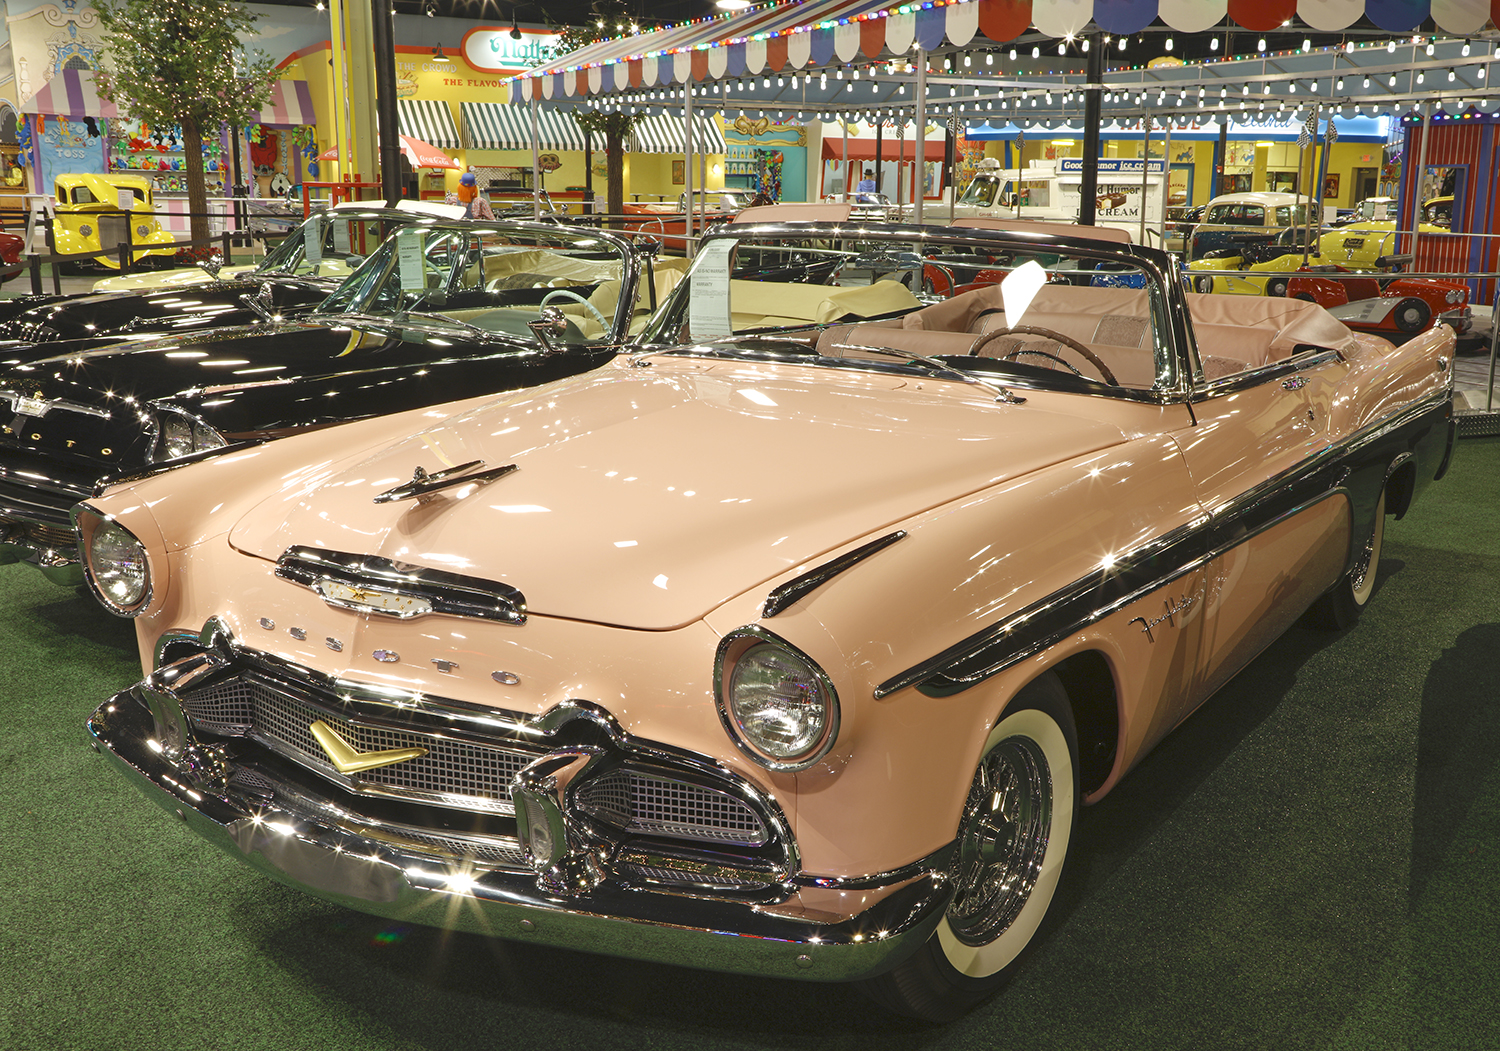 1956 Desoto Fireflite Convertible - Welcome to Cars of ...